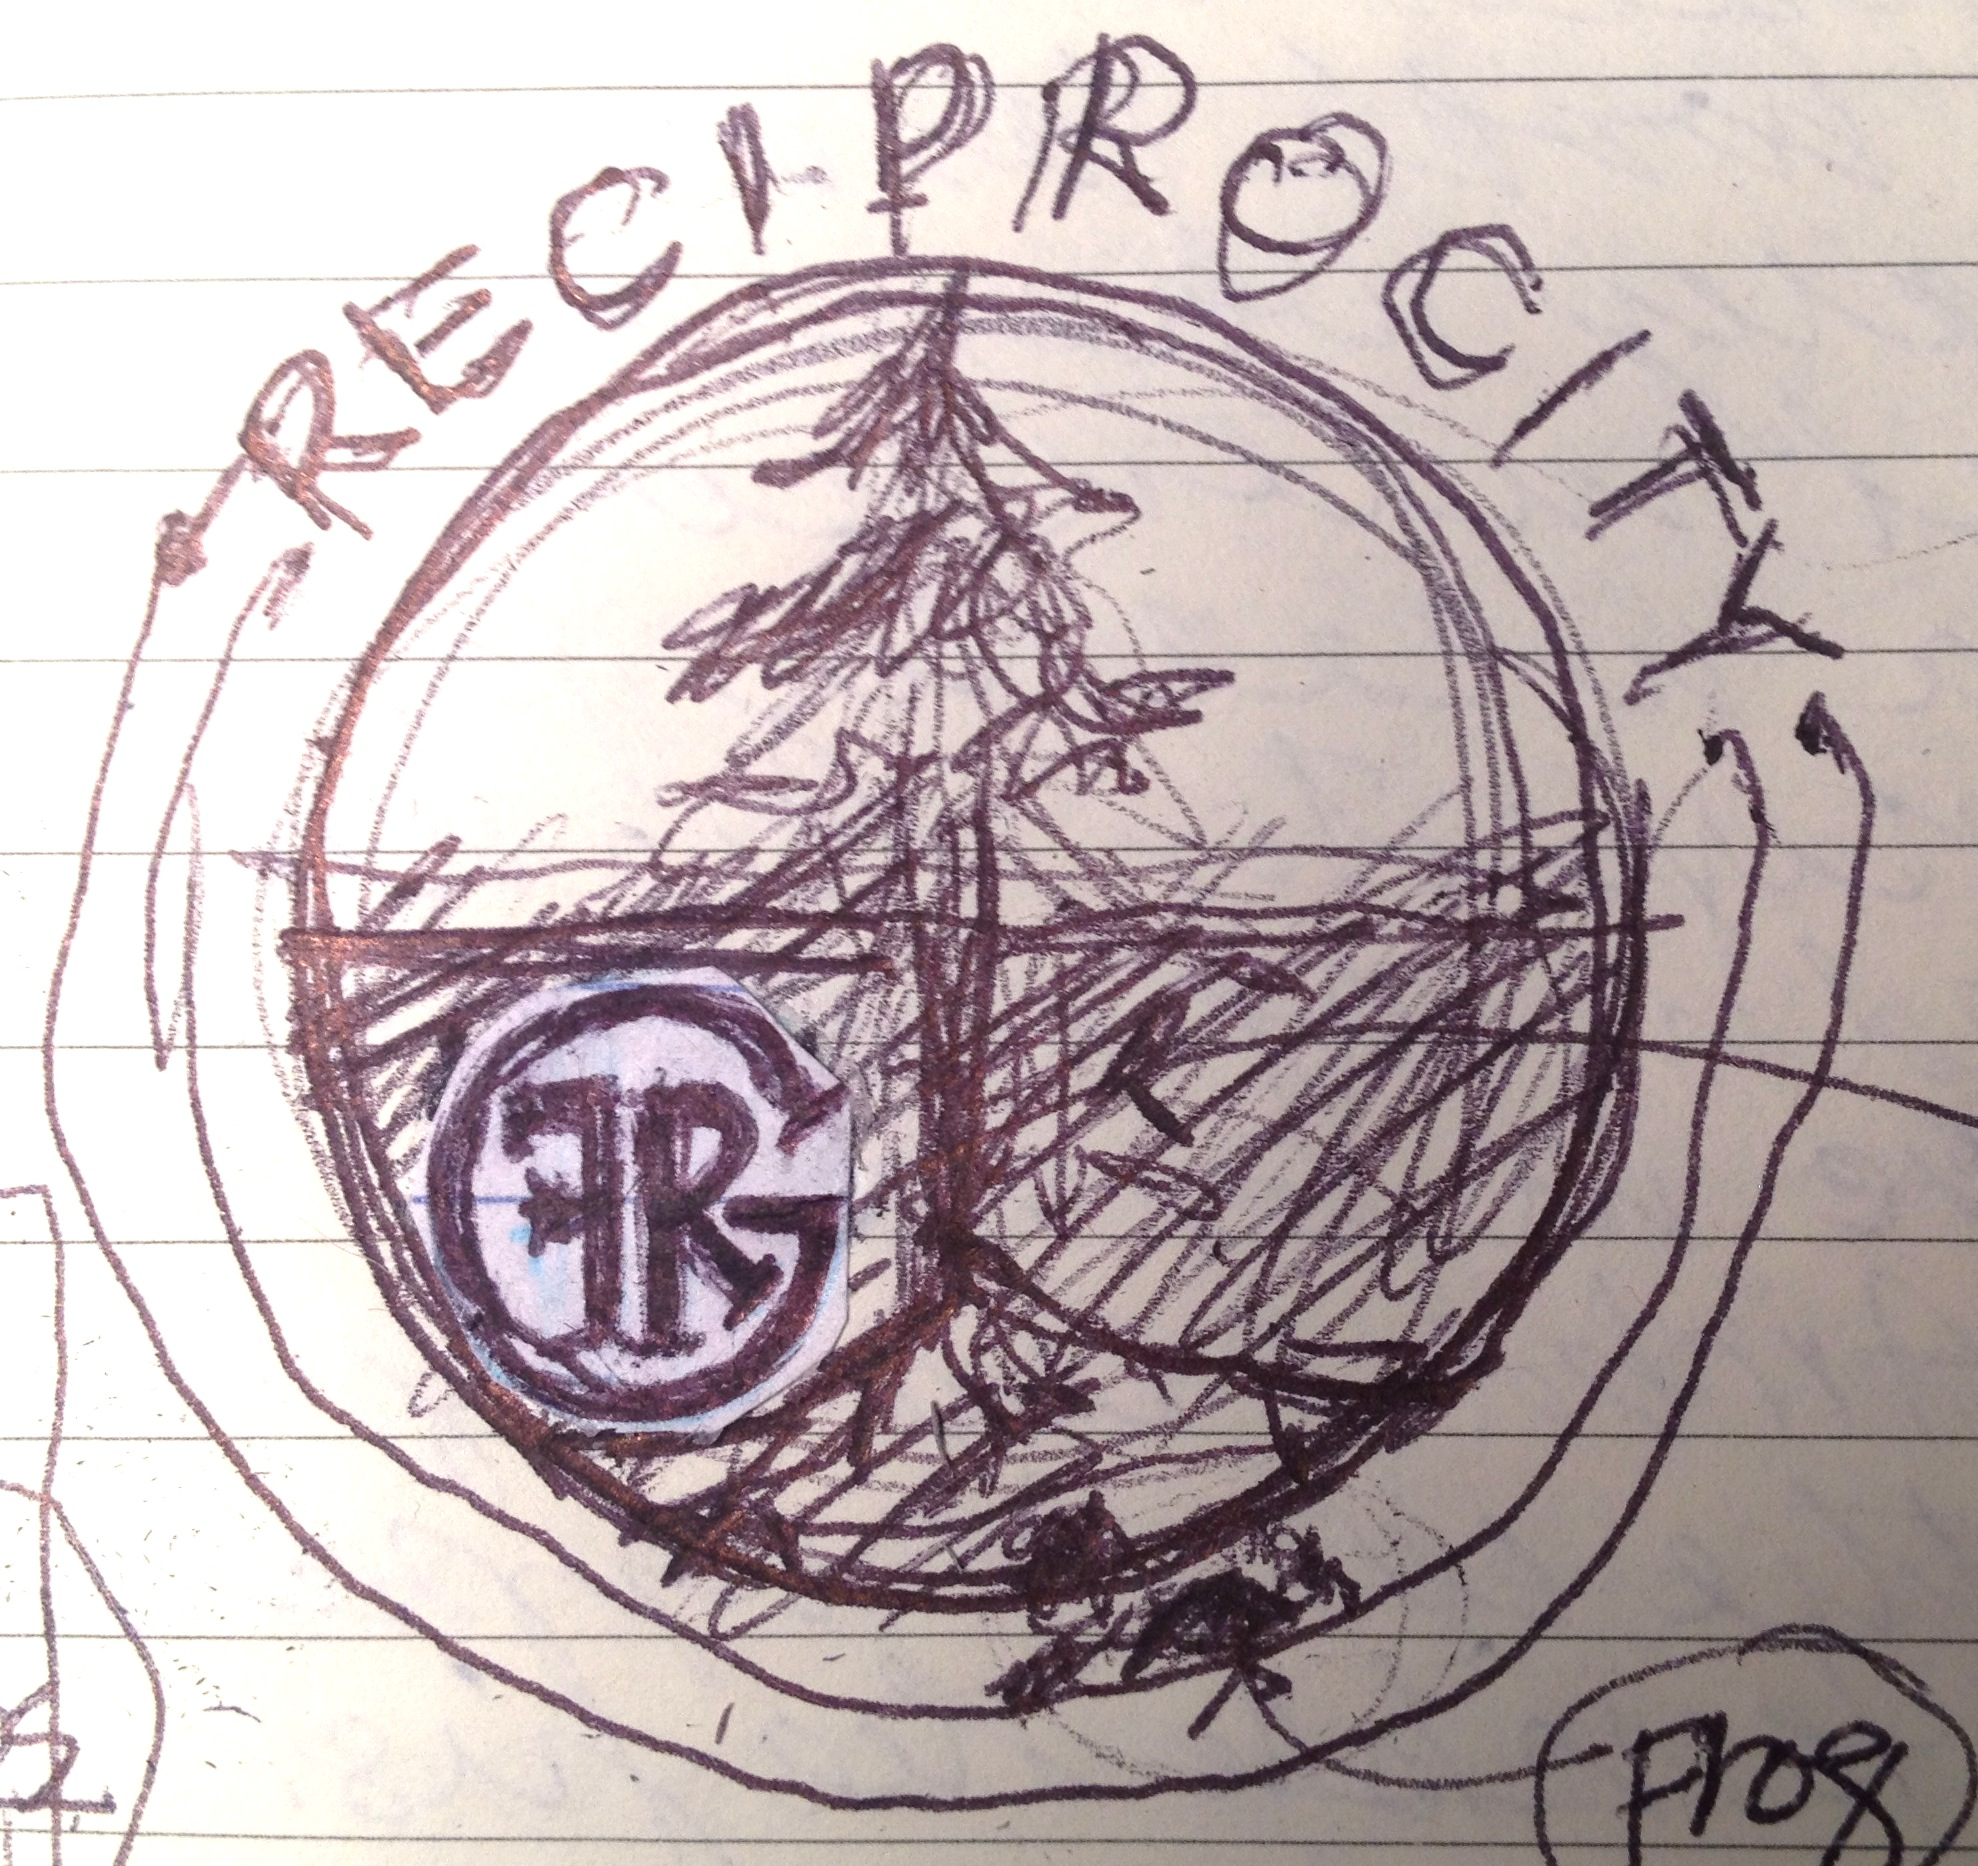 Still working on our logo!!